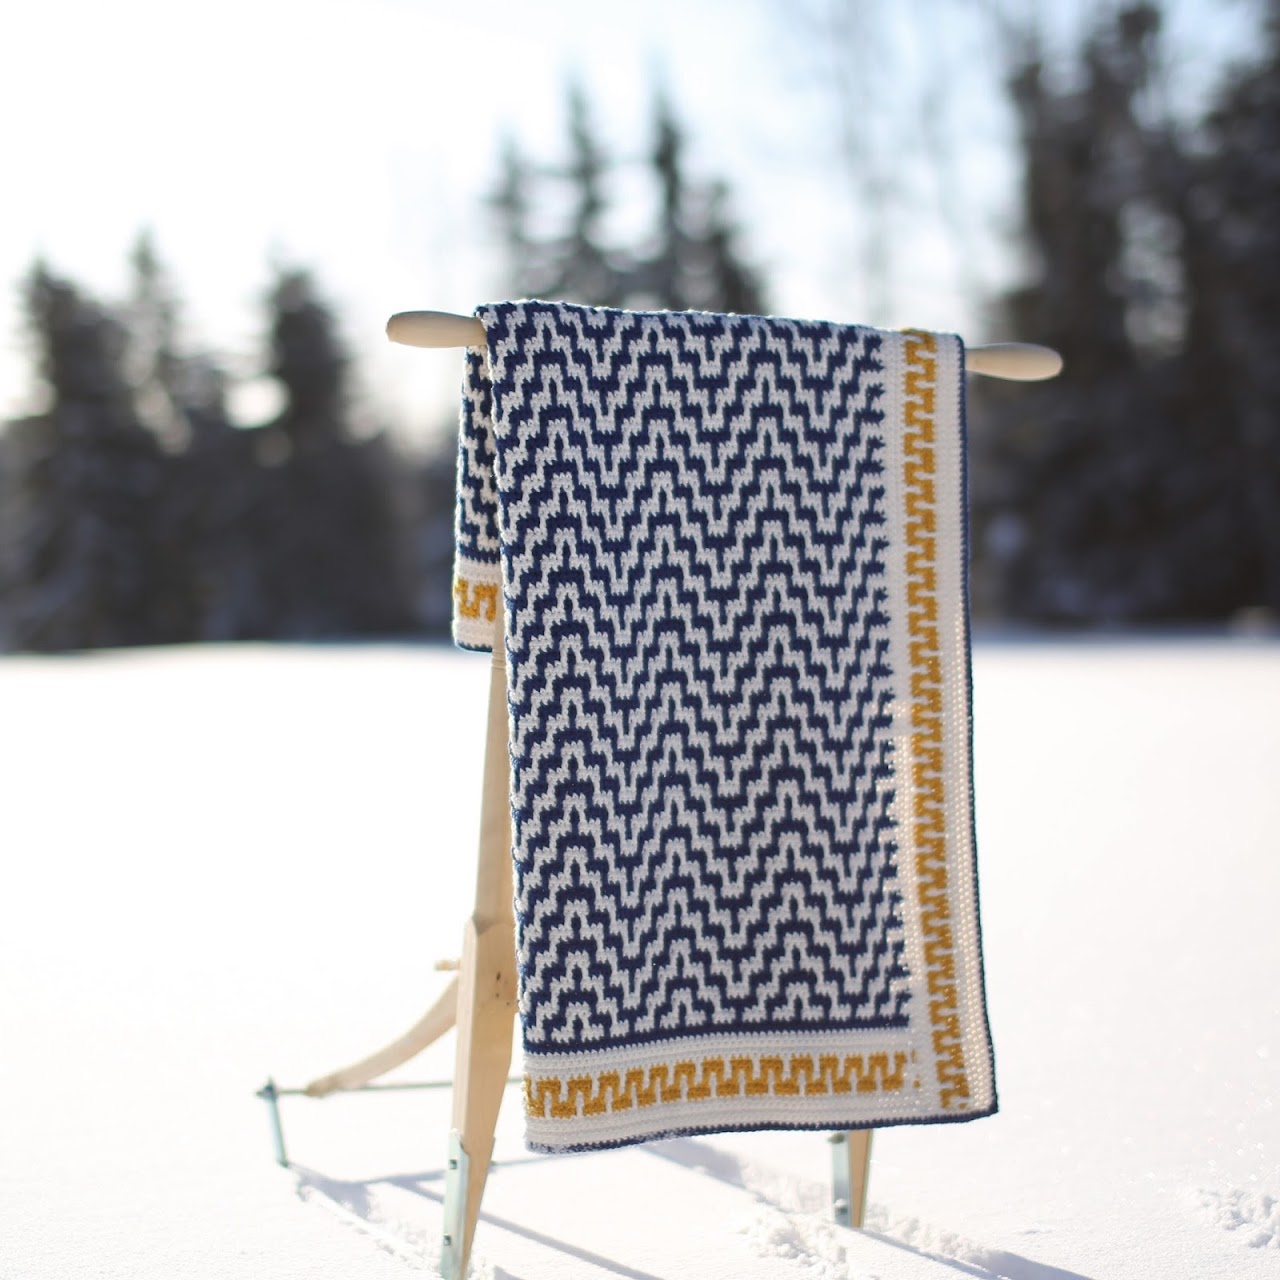 One Step Beyond blanket - FREE crochet pattern by @martinupnorth